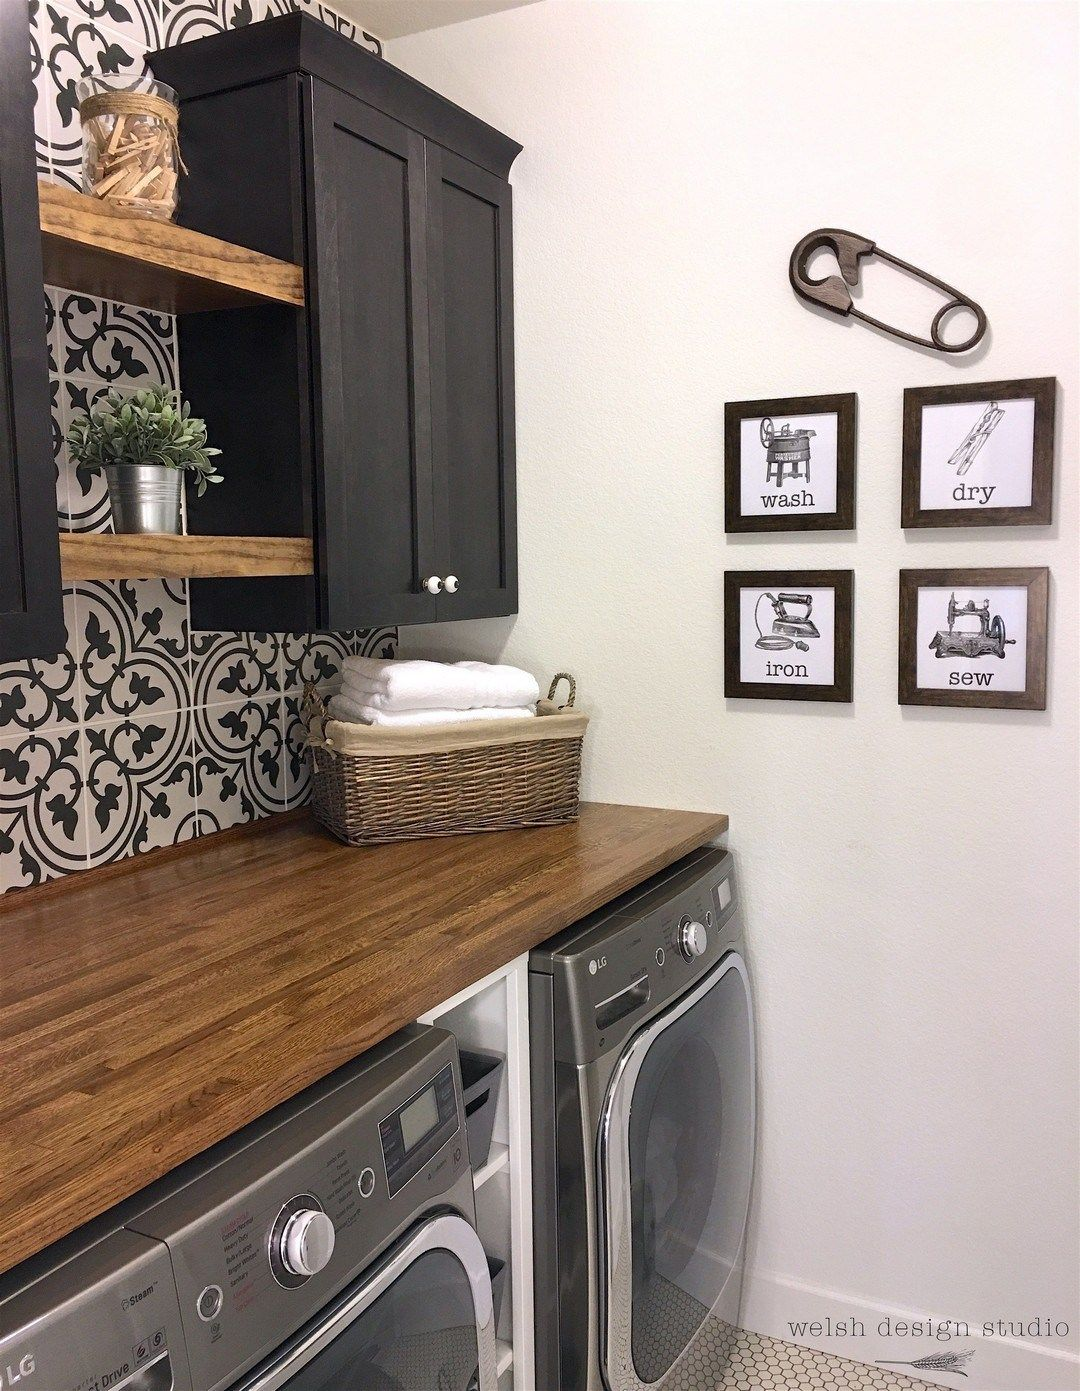 20 Laundry Room Decorating Ideas That Are Stylish and Functional images